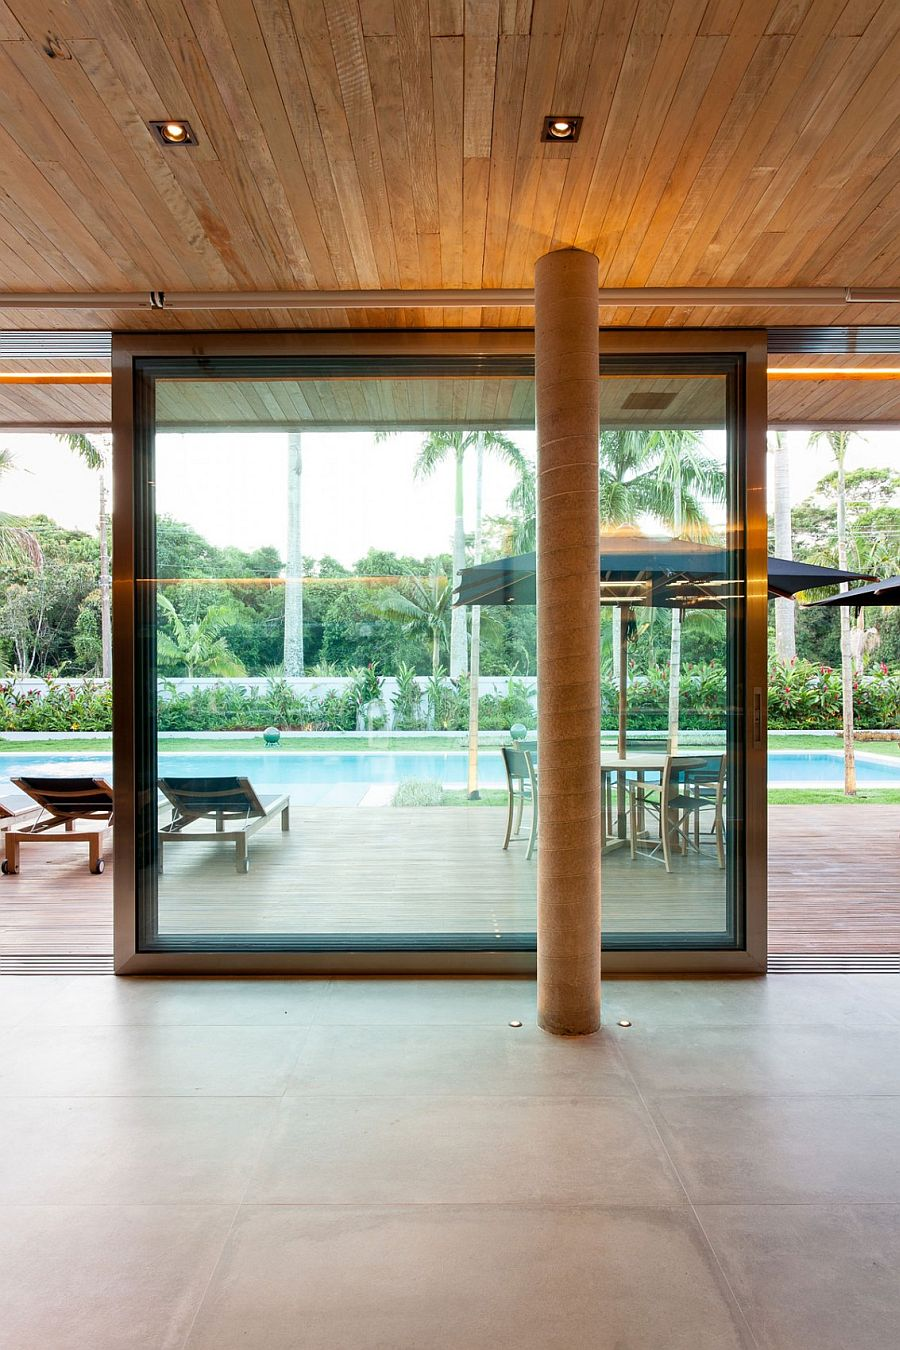 Sliding glass doors connect the pavilion with the pool area